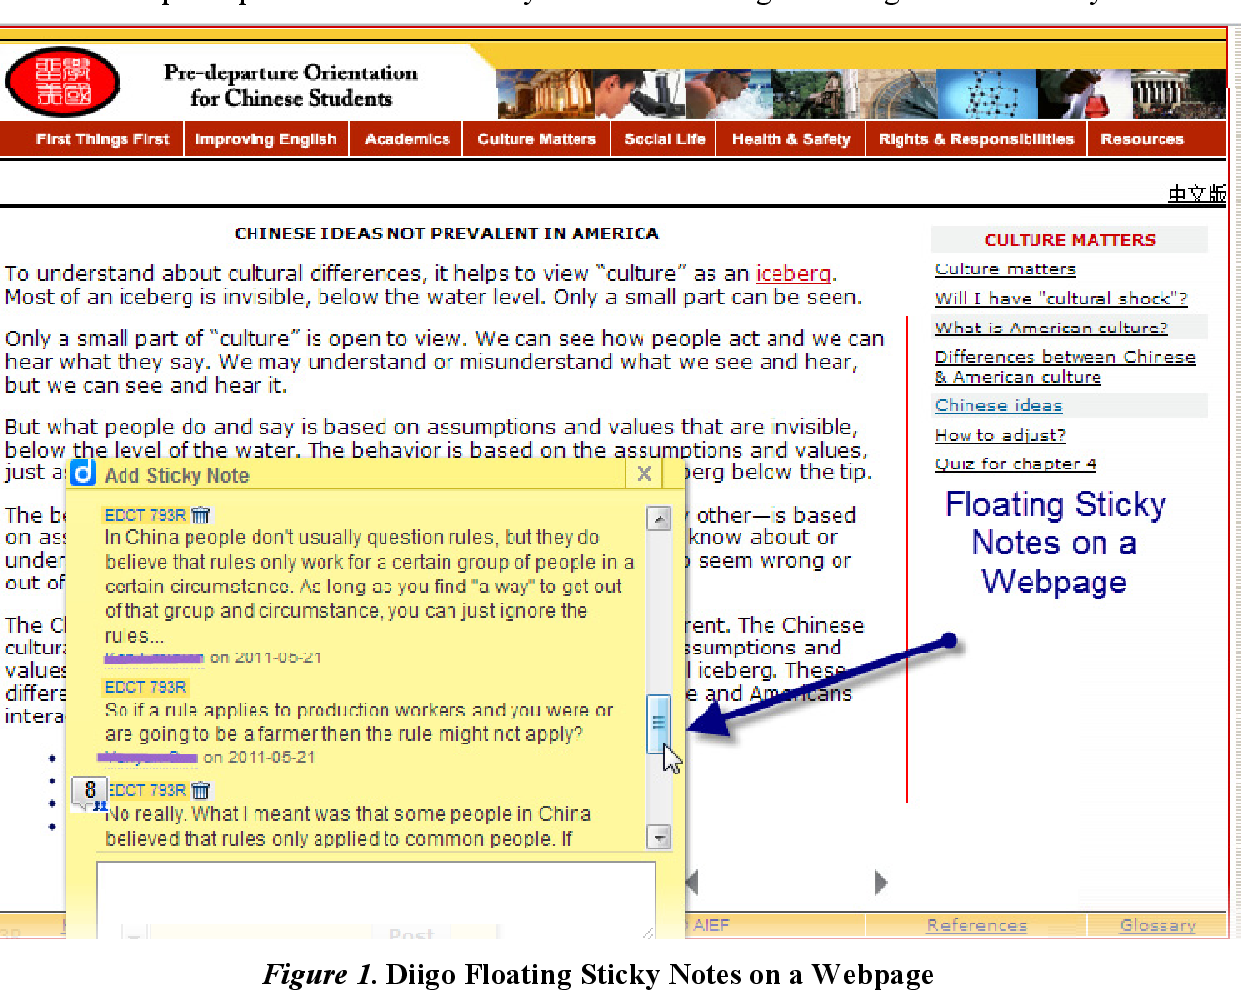 Web Annotation and Threaded Forum: How Did Learners Use the Two